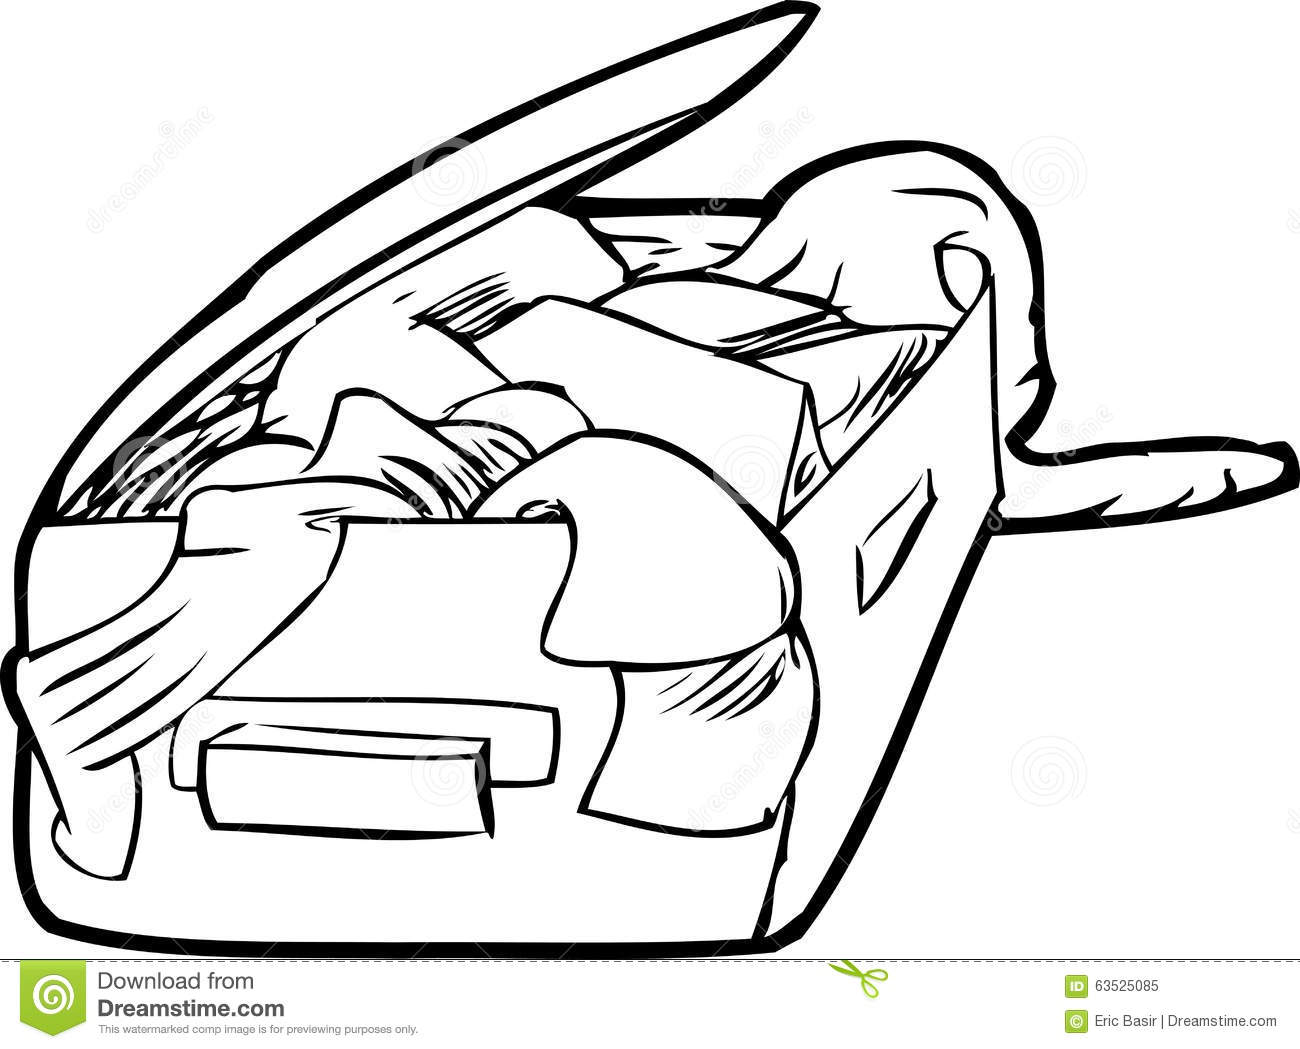 Outlined Packed Suitcase Stock Illustration Illustration Of Rumpled